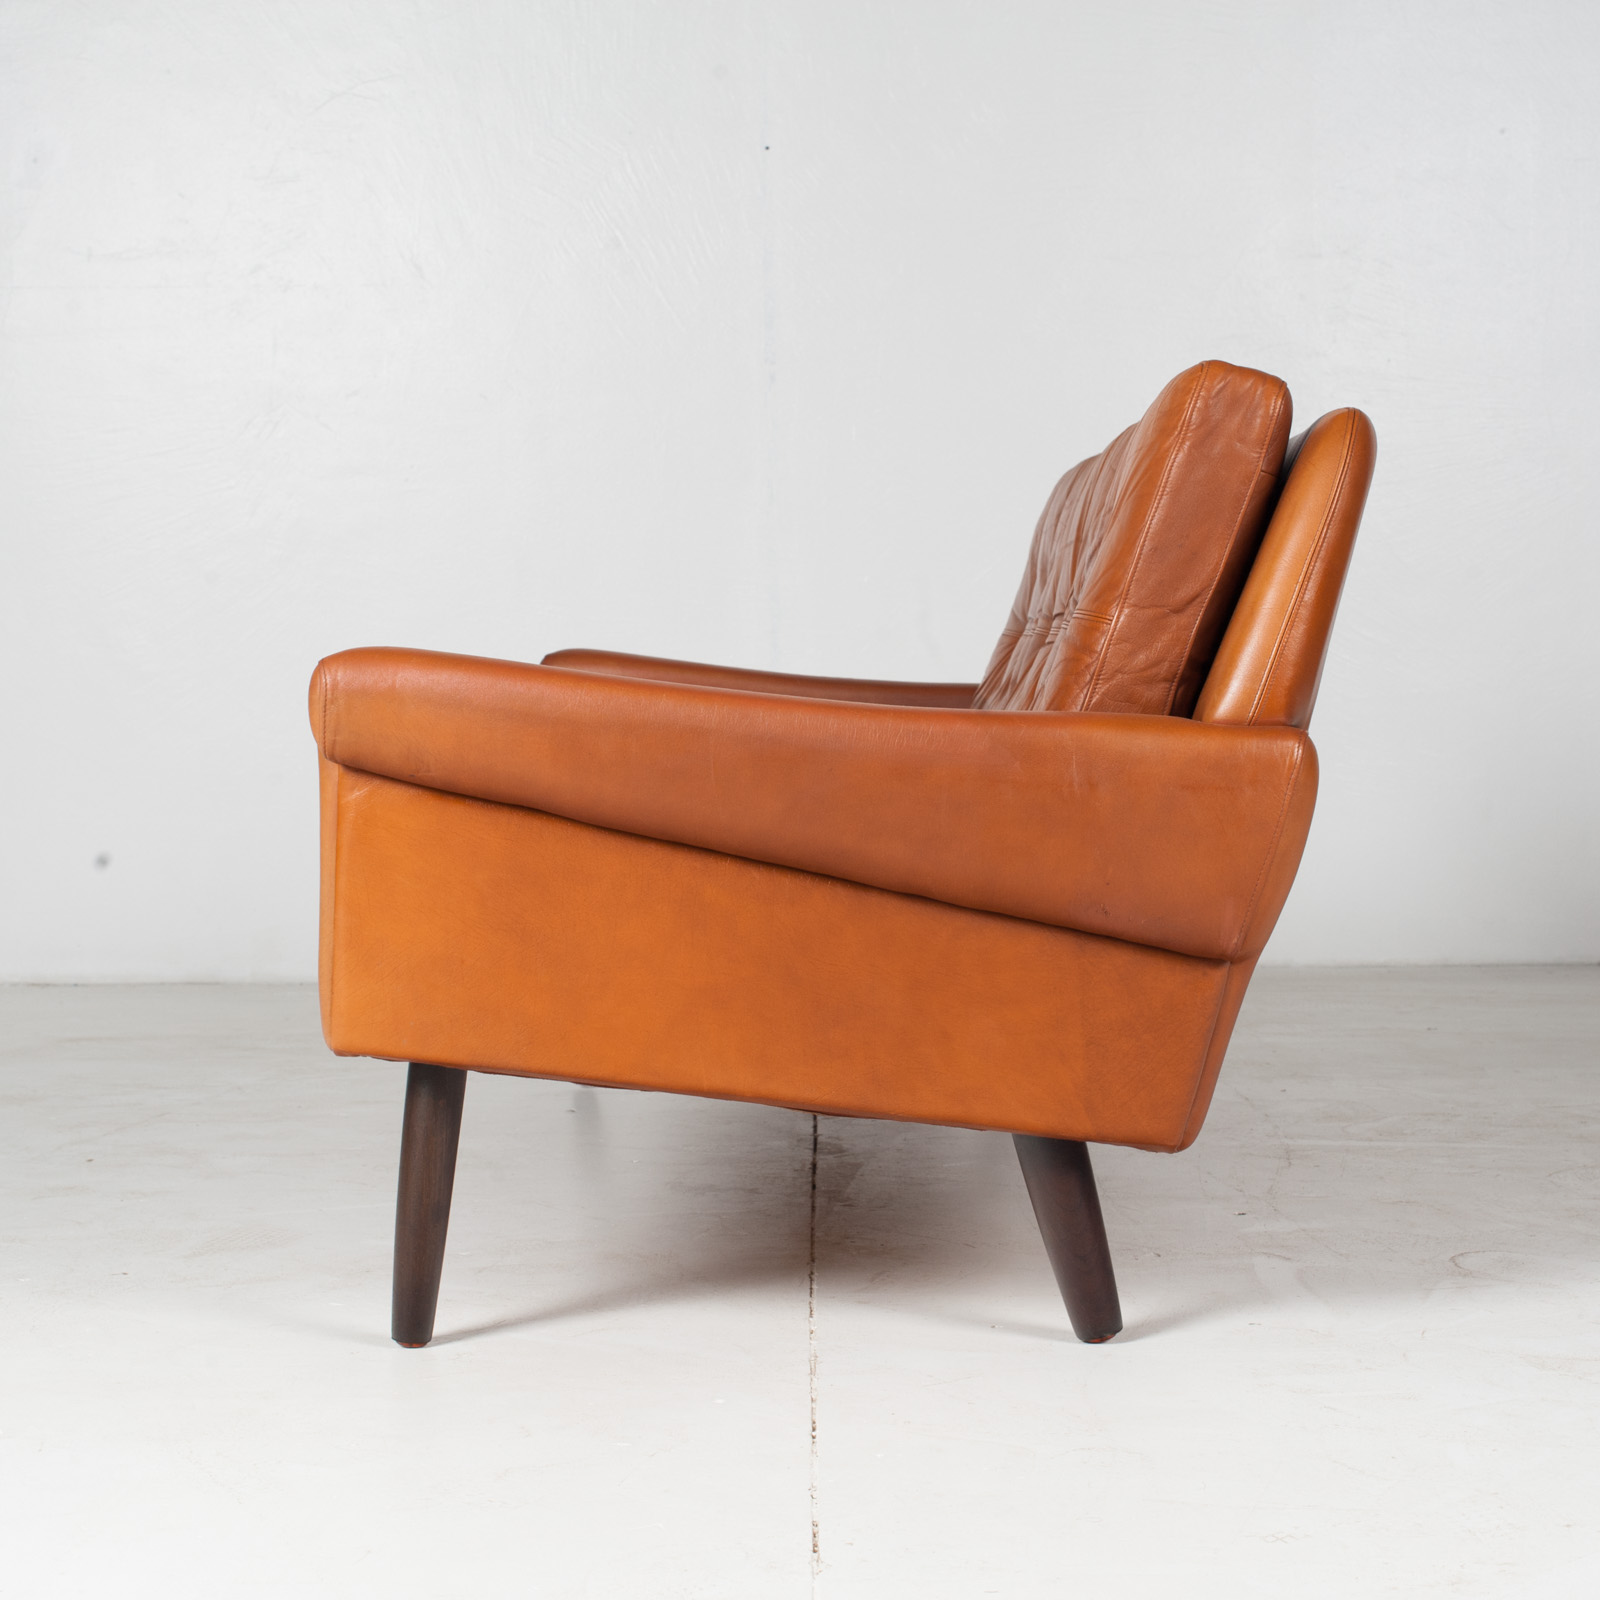 3 Seat Sofa In Tan Leather With Button Detailing For Skipper, 1960s, Denmark7